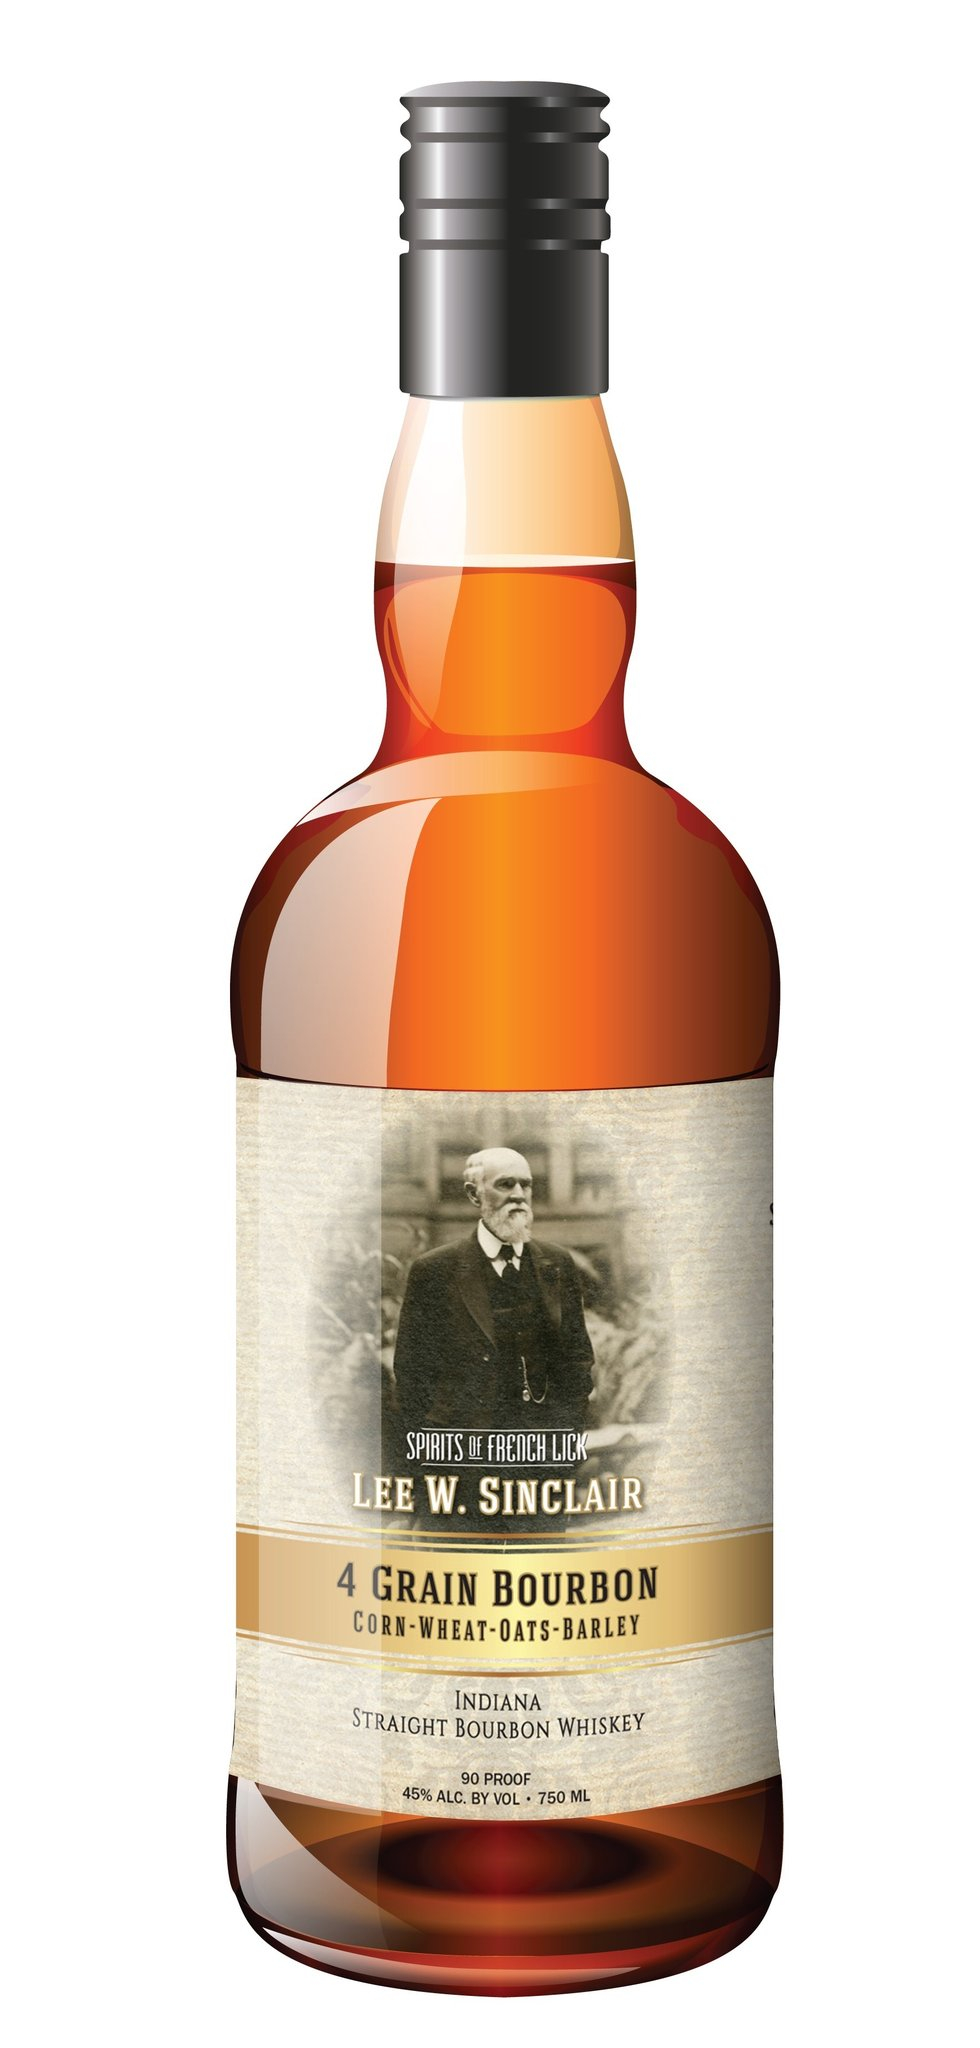 Spirits of French Lick Sinclair Bottled in Bond